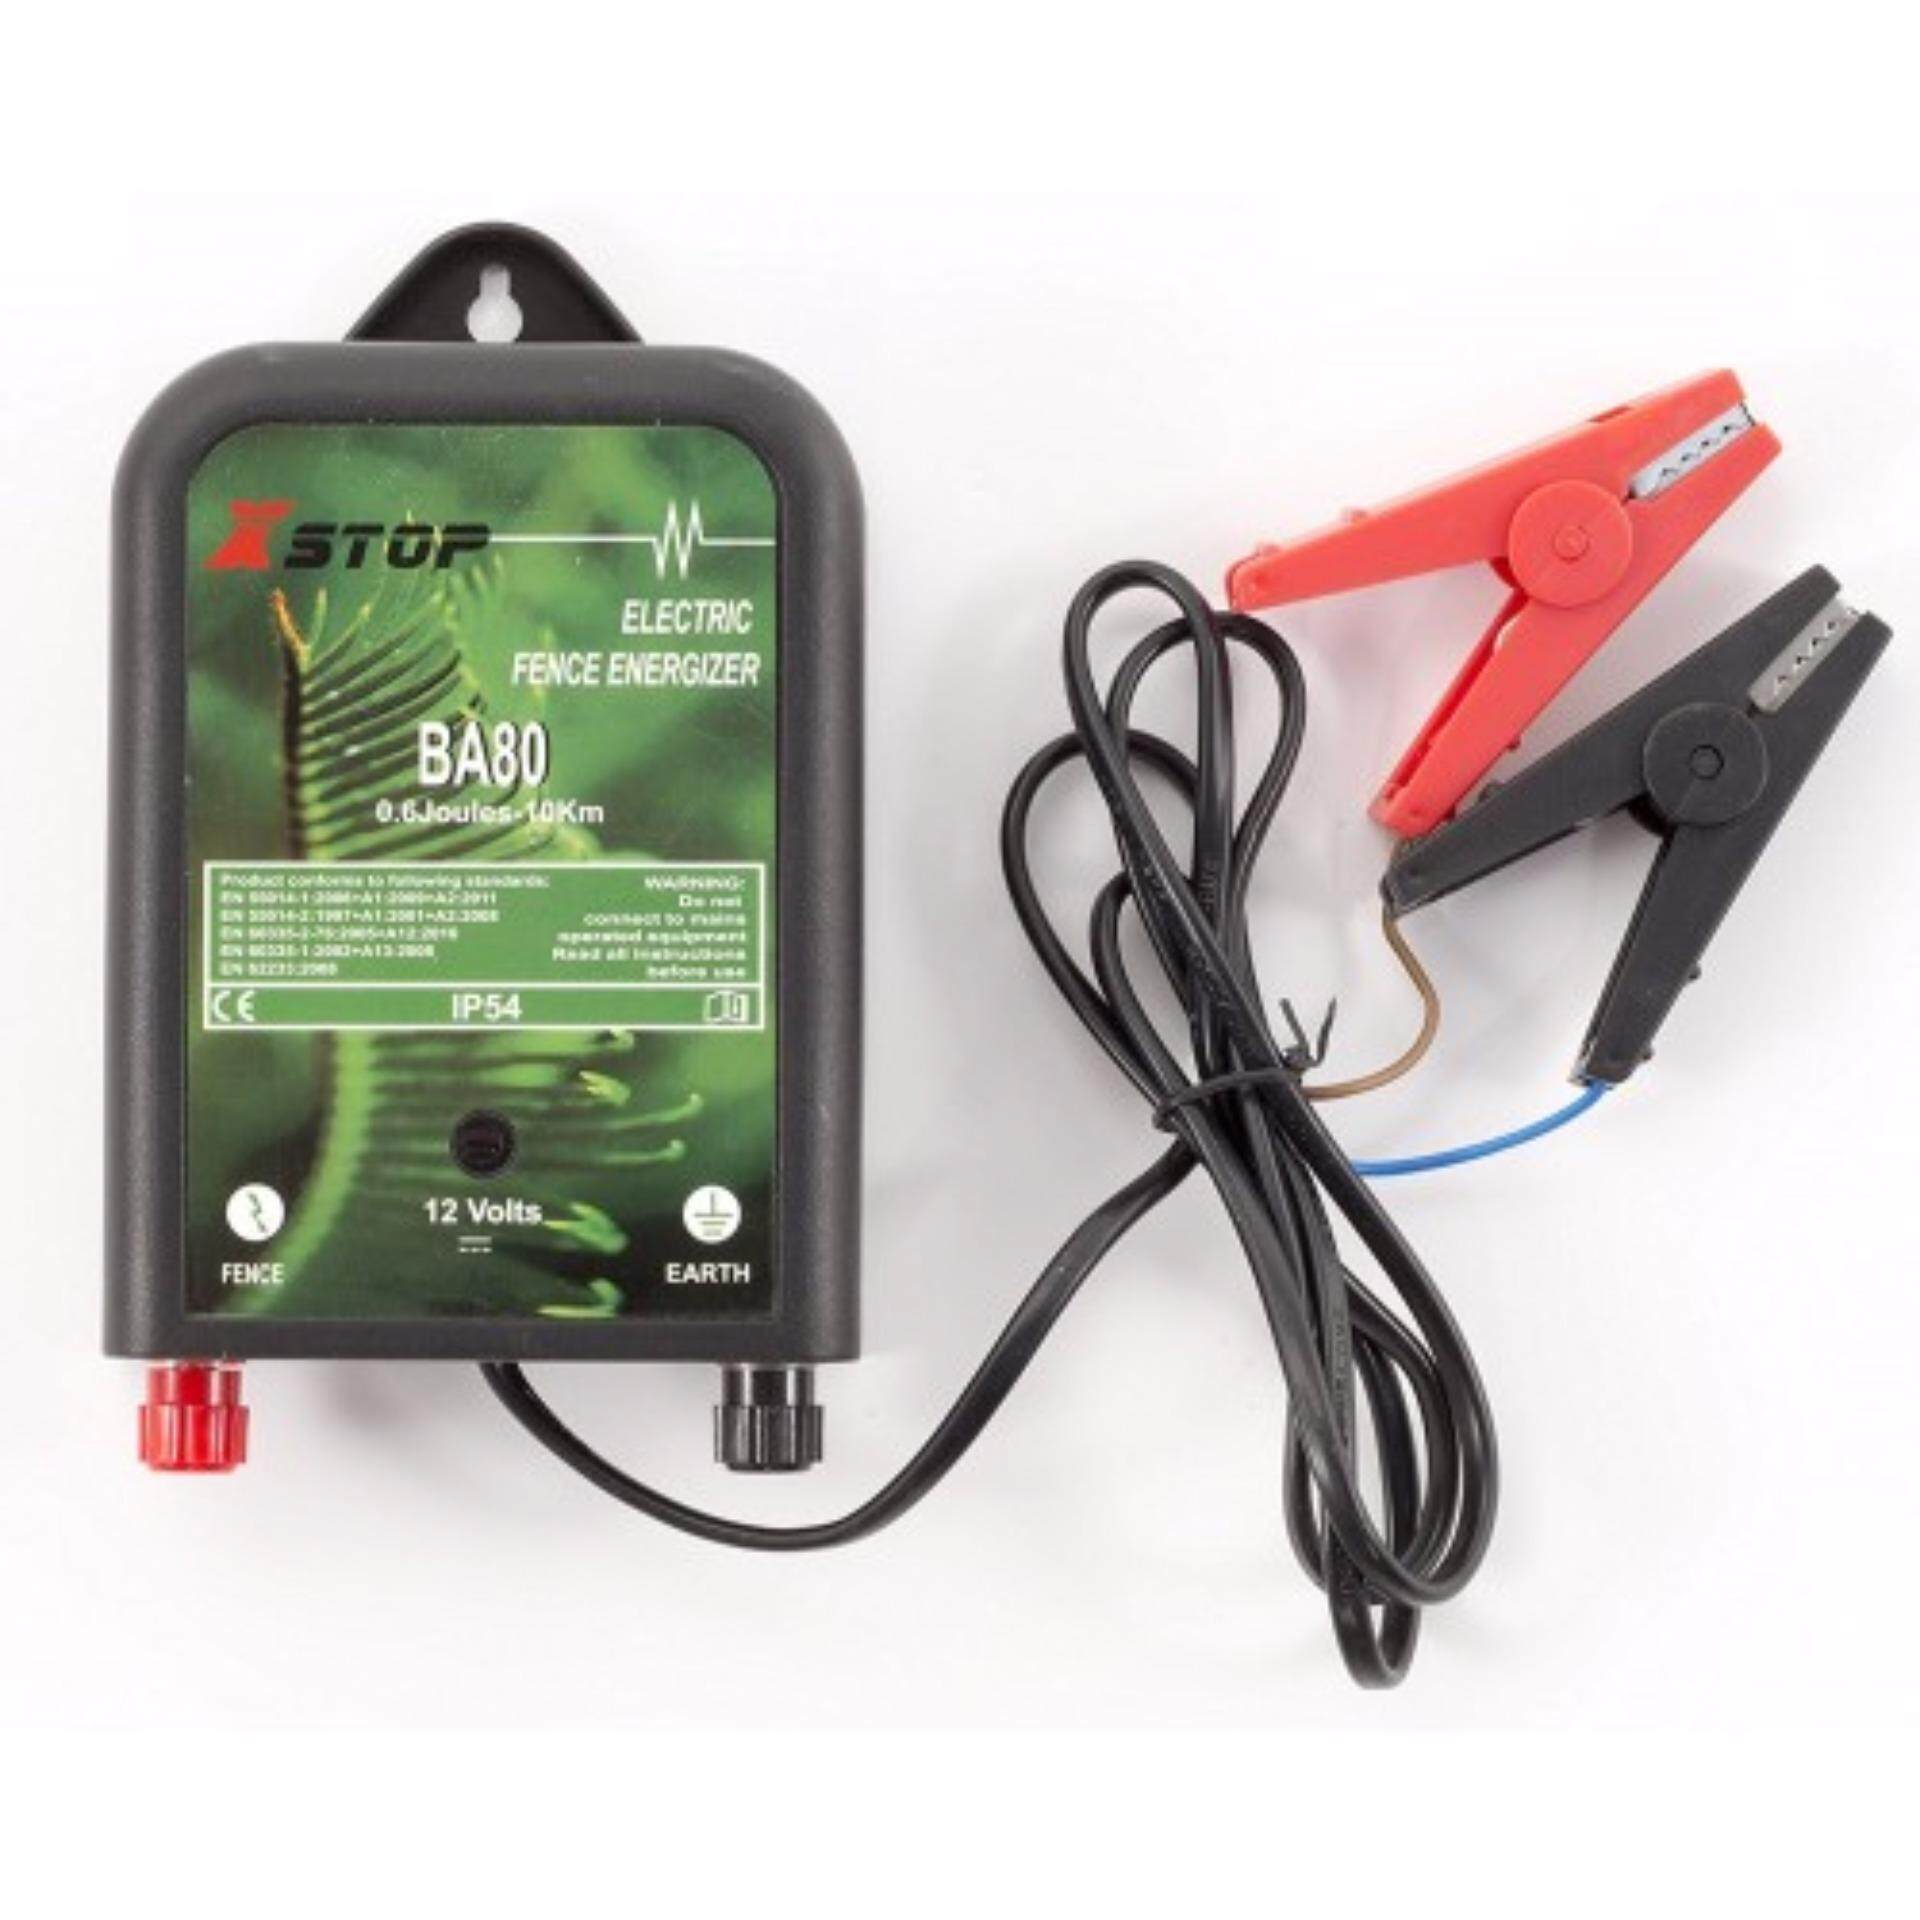 Sell Battery Energizer Advanced Cheapest Best Quality My Store E92 Aaa Bp 4 Myr 299